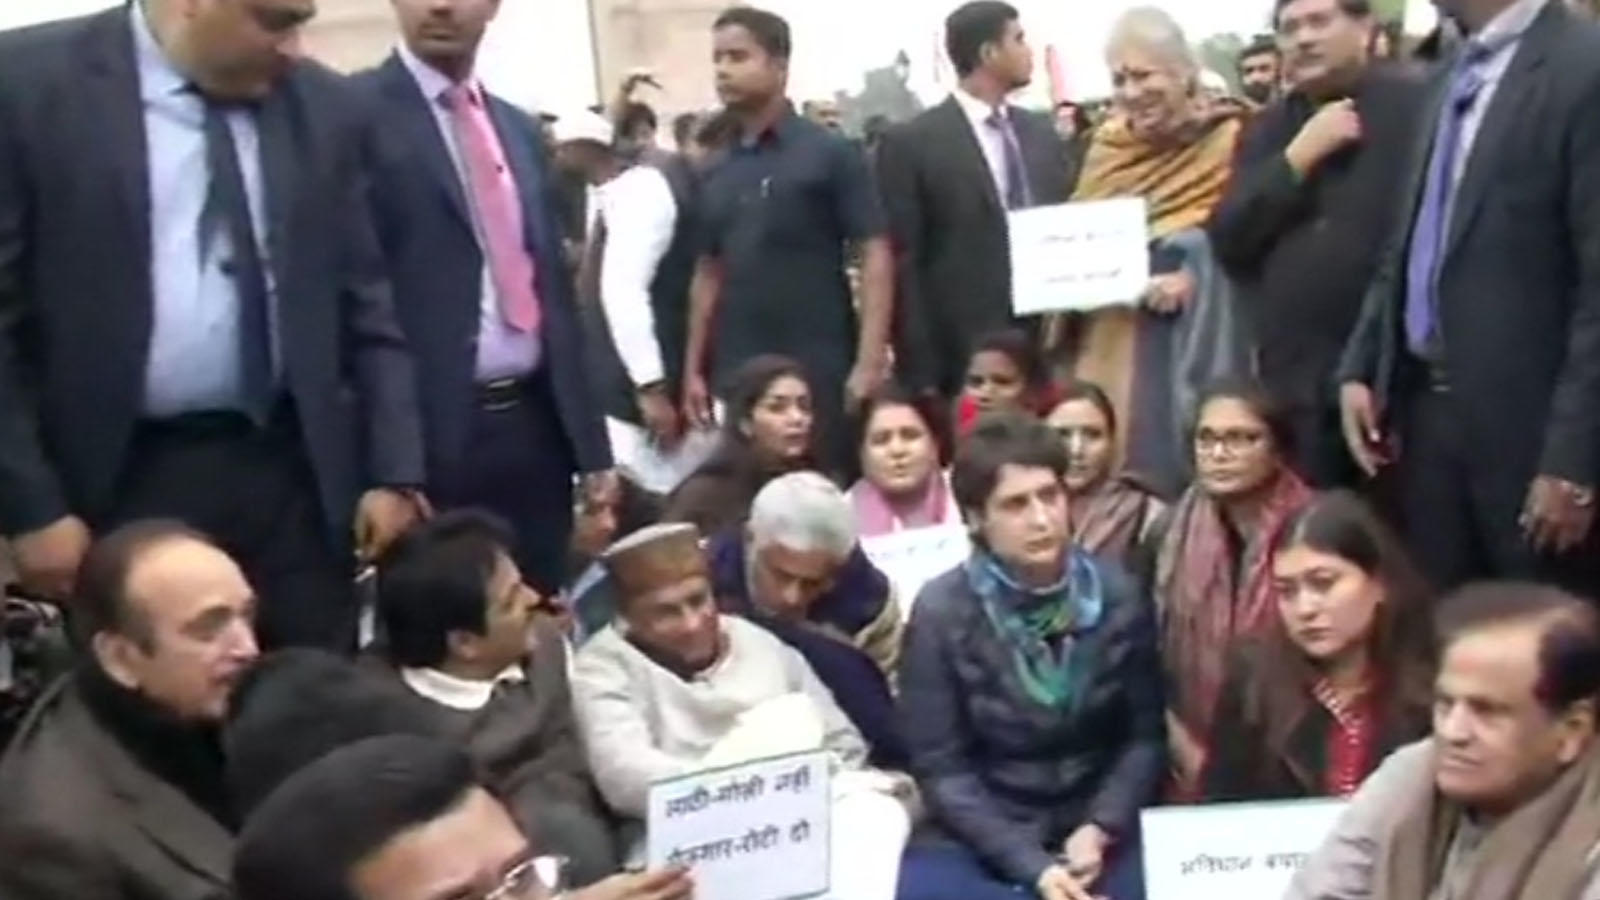 priyanka-gandhi-stages-dharna-over-police-action-during-students-protest-in-jamia-millia-islamia